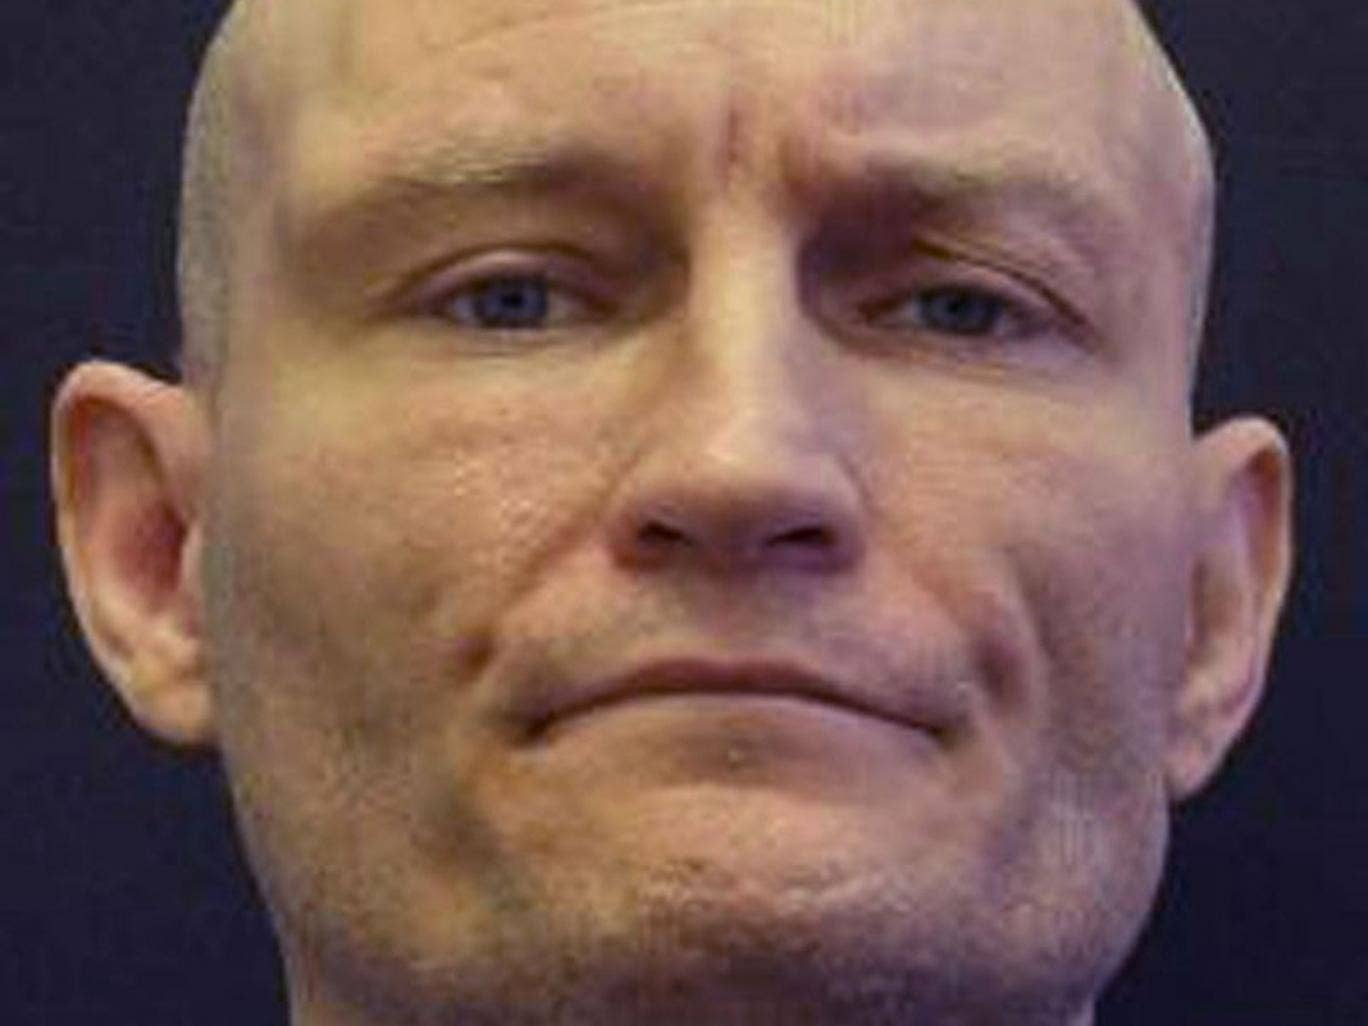 Arnold Pickering, 44, who failed to return to Kennet Prison in Liverpool after leaving on day release at about 9.30am on Saturday